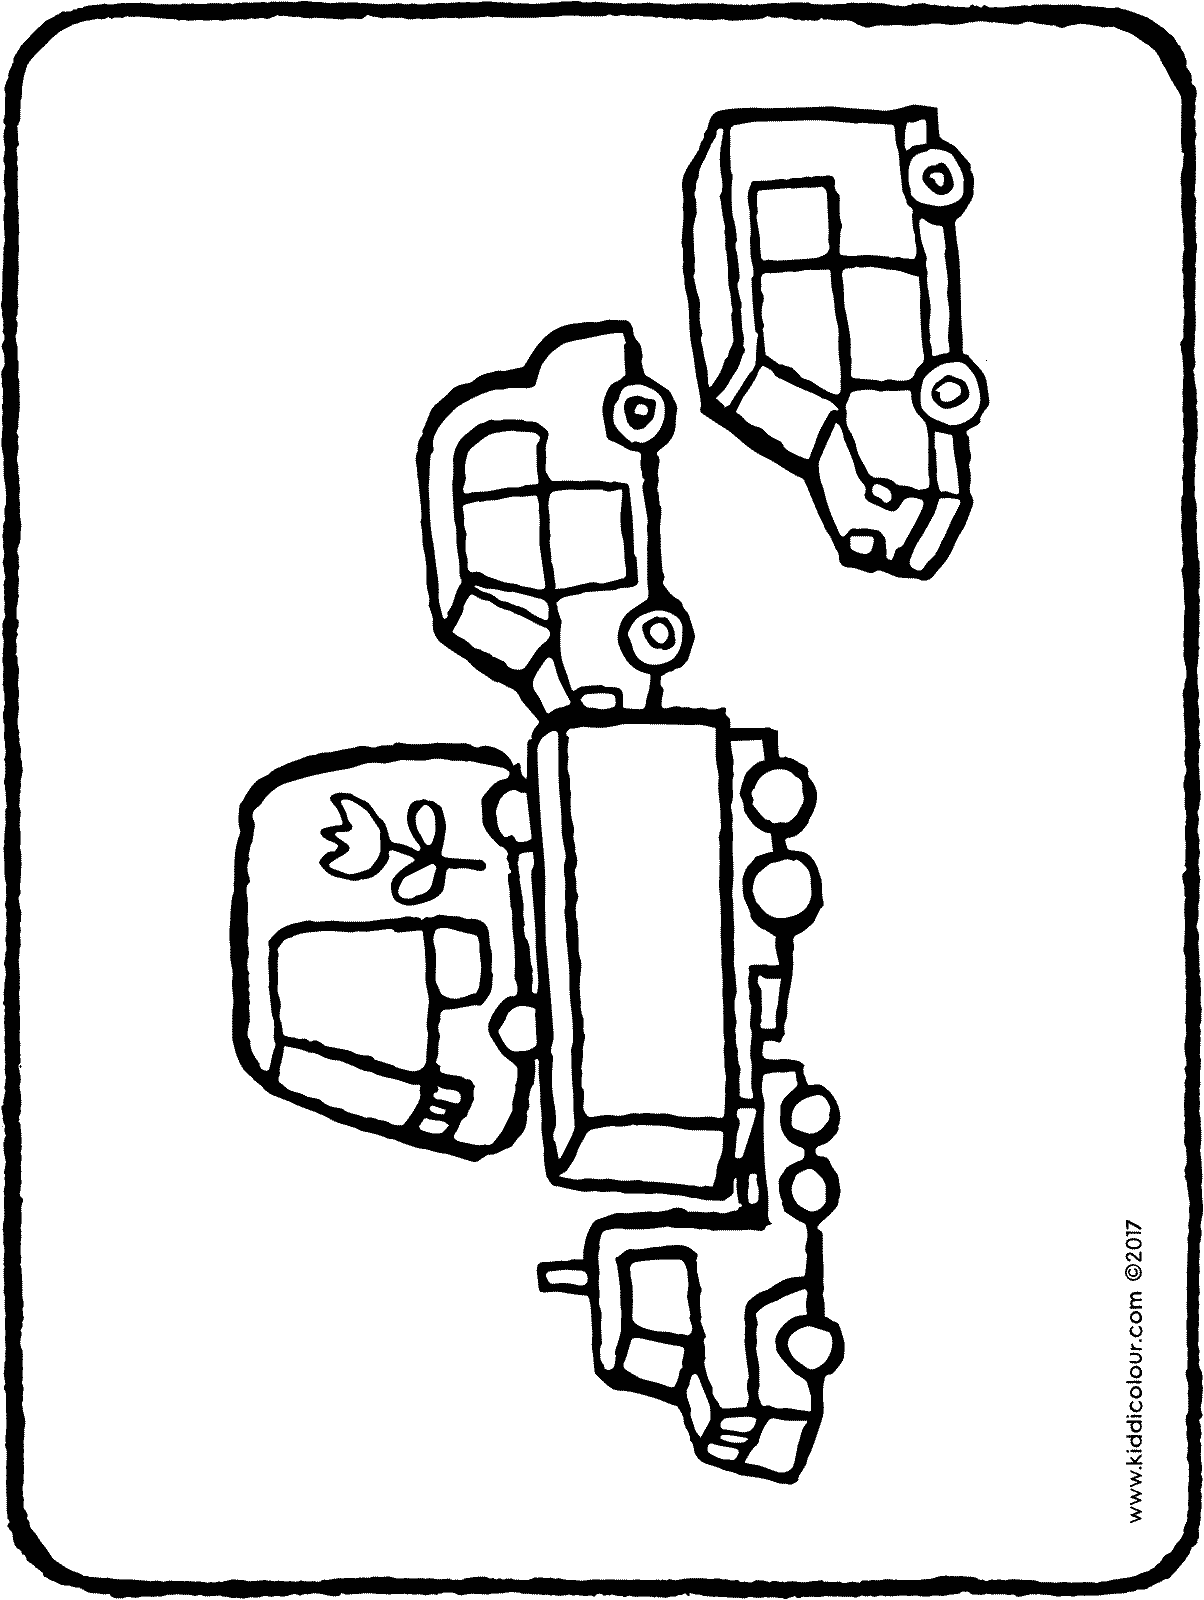 toy cars colouring page page drawing picture 01H